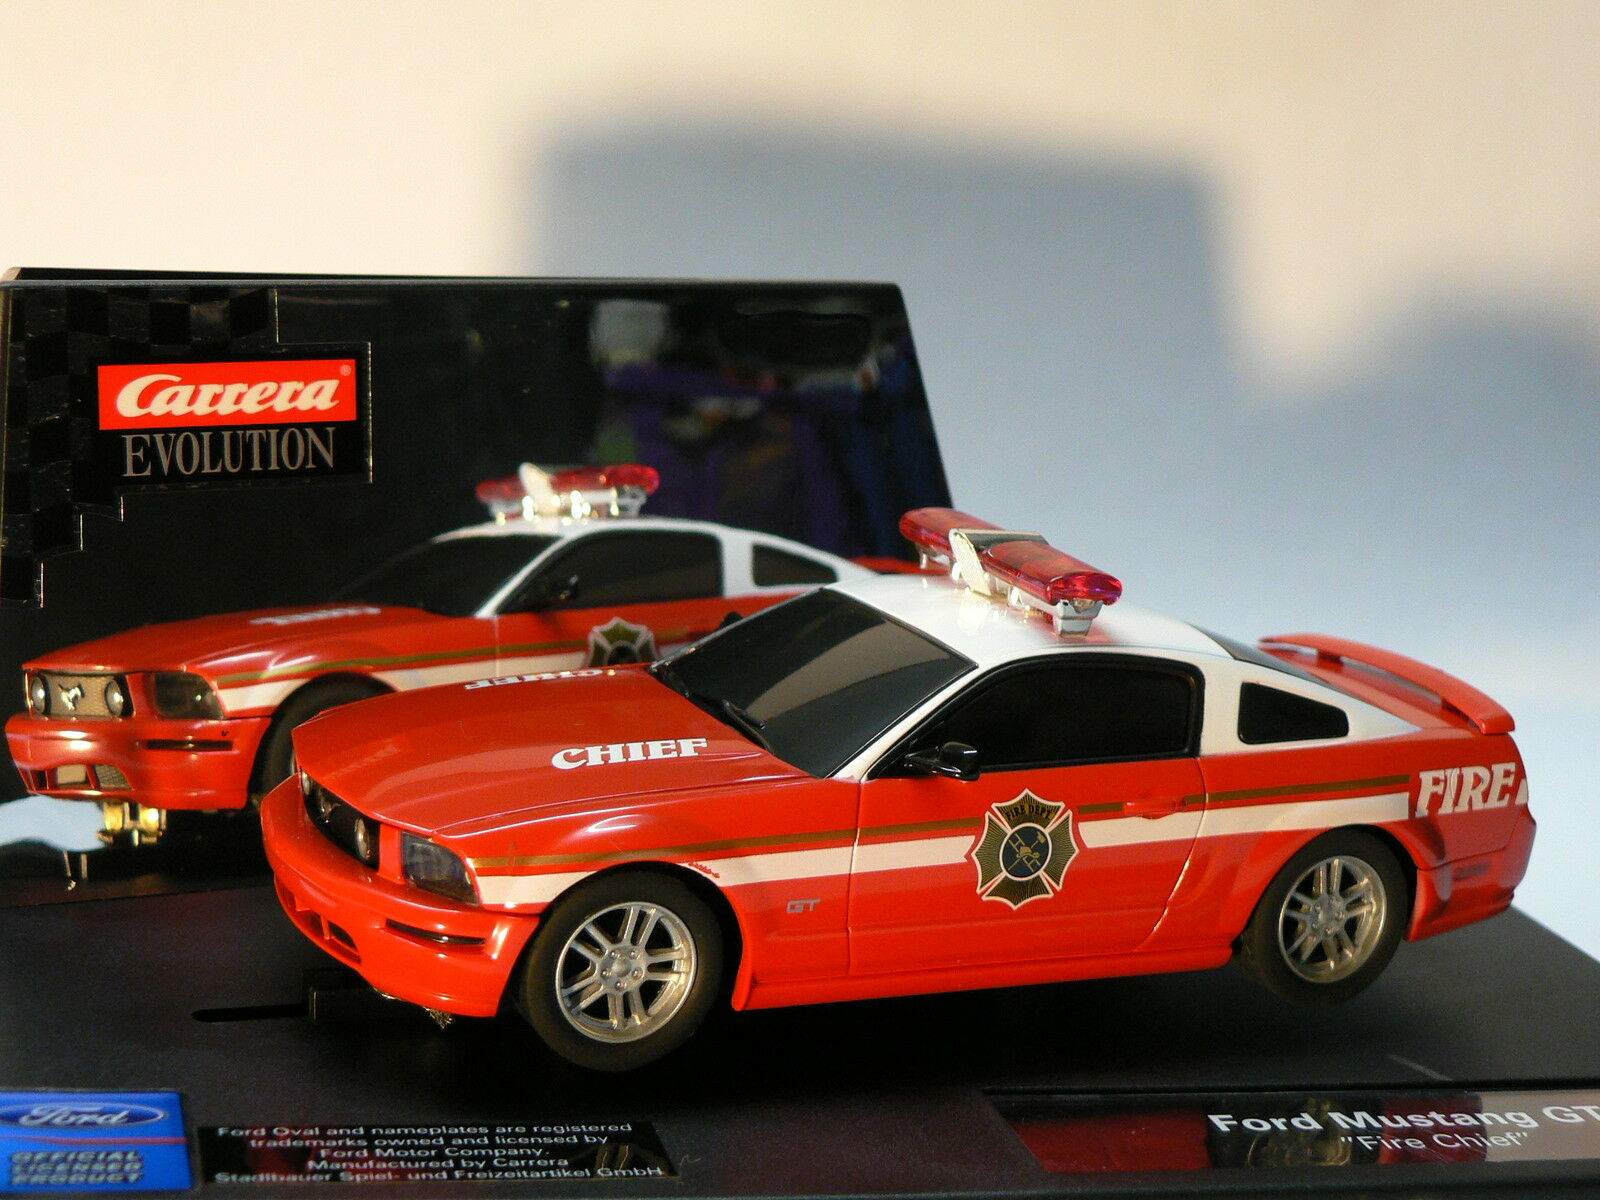 CARRERA EVOLUTION 27177 FORD MUSTANG GT Fire Jefe NUEVO